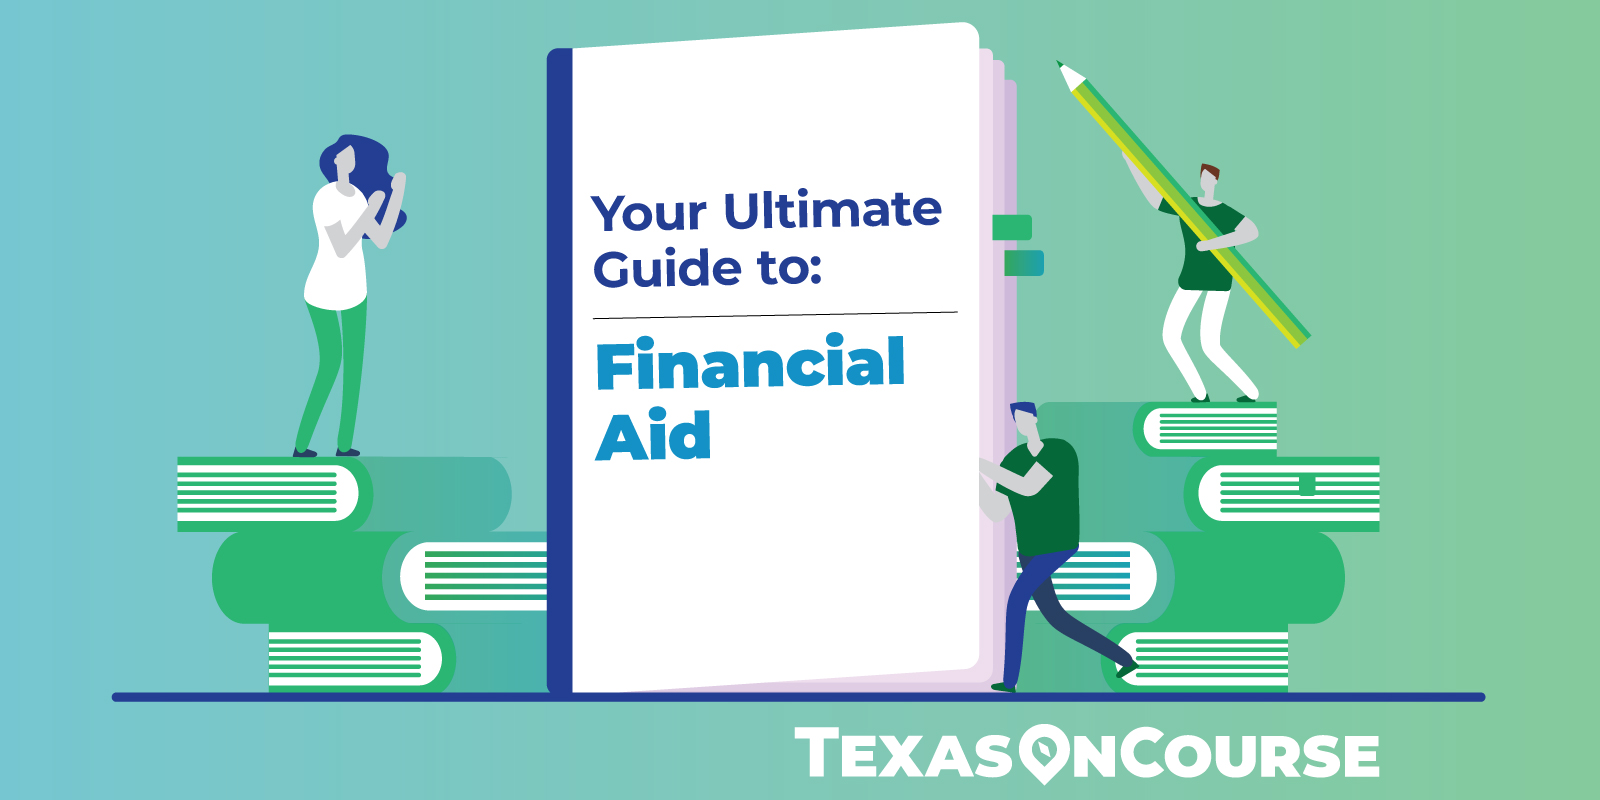 Your Ultimate Guide to Financial Aid